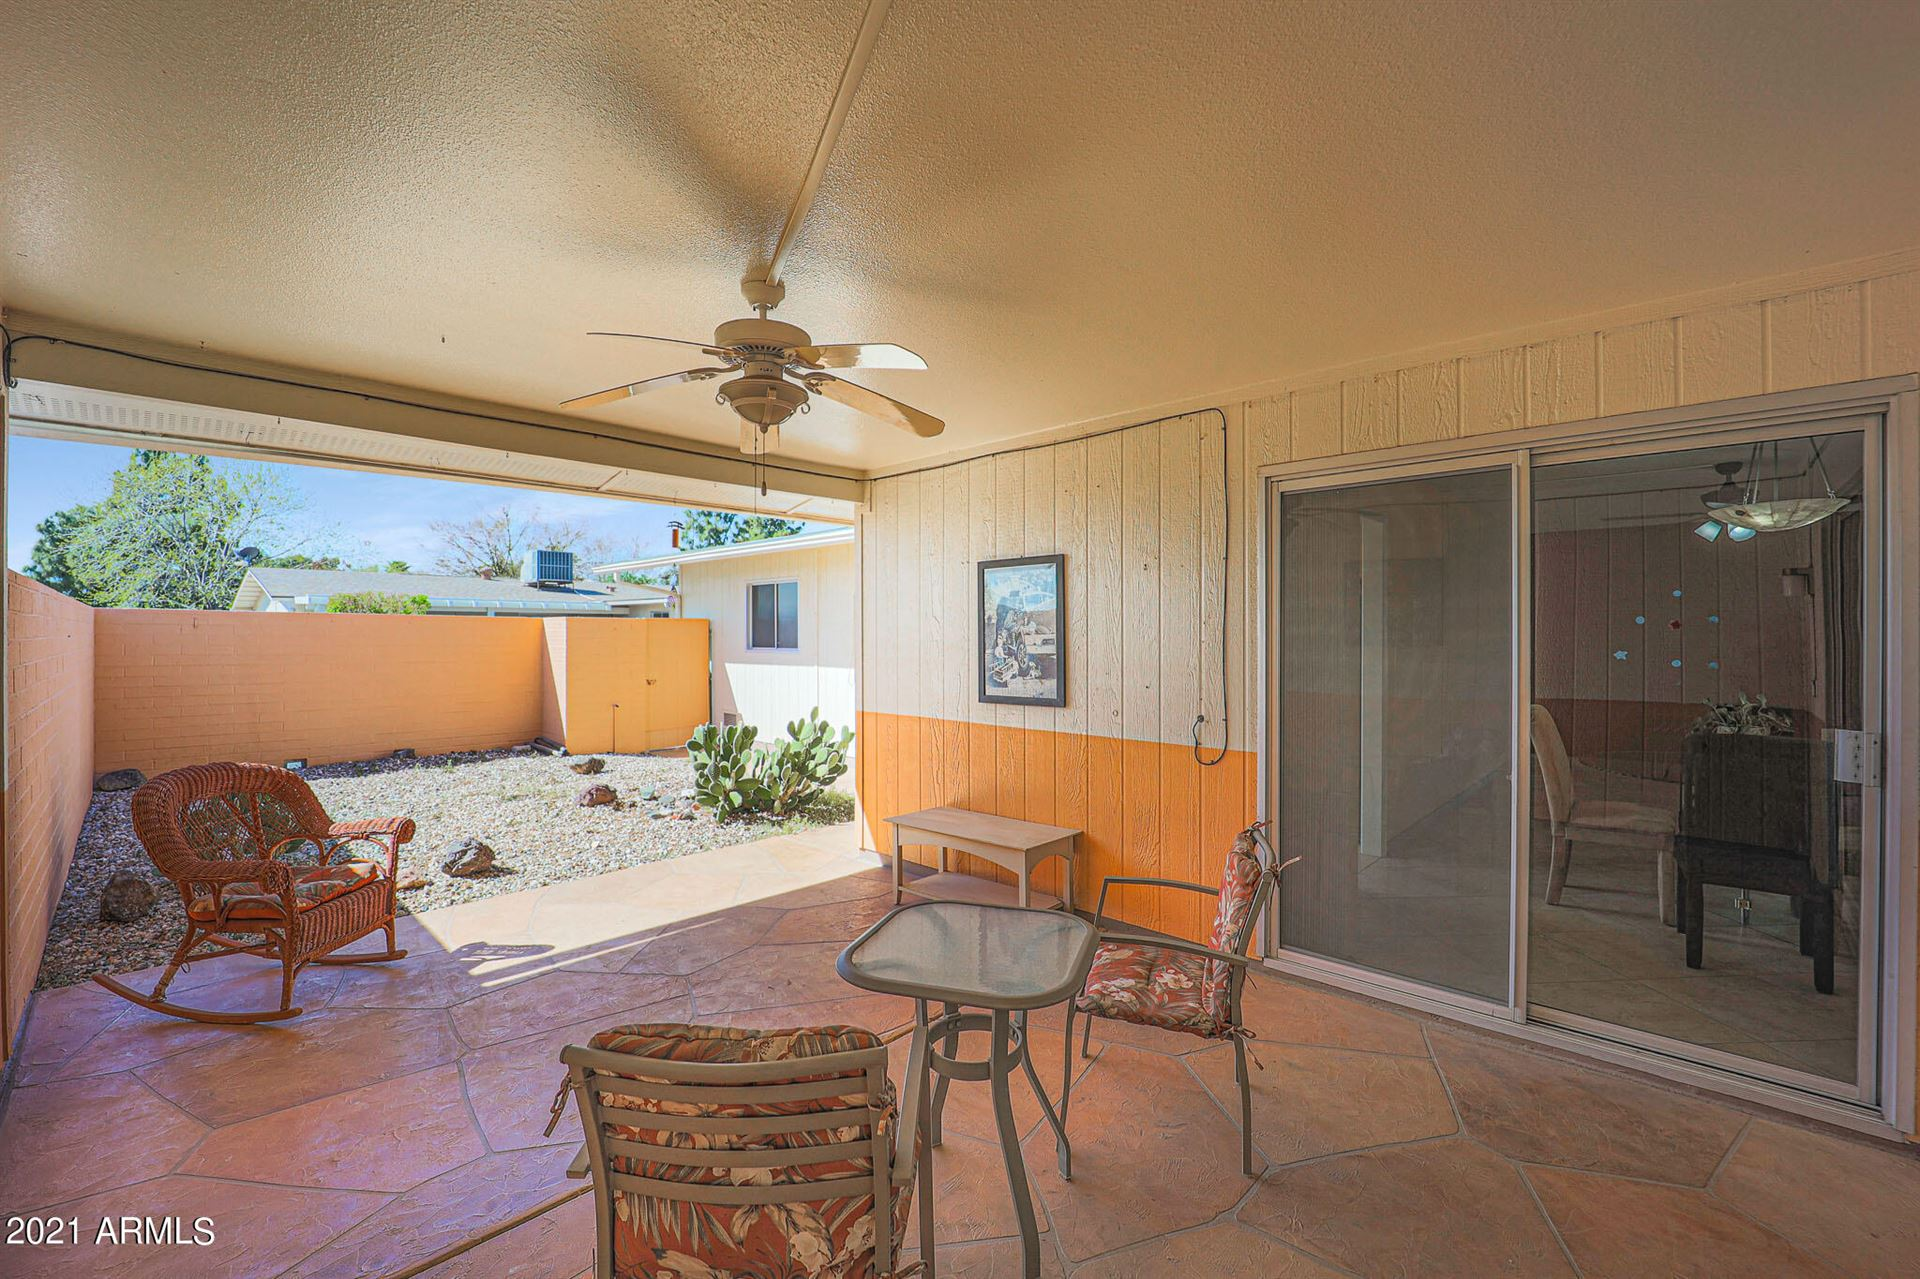 Photo of 13241 W ALEPPO Drive, Sun City West, AZ 85375 (MLS # 6198664)